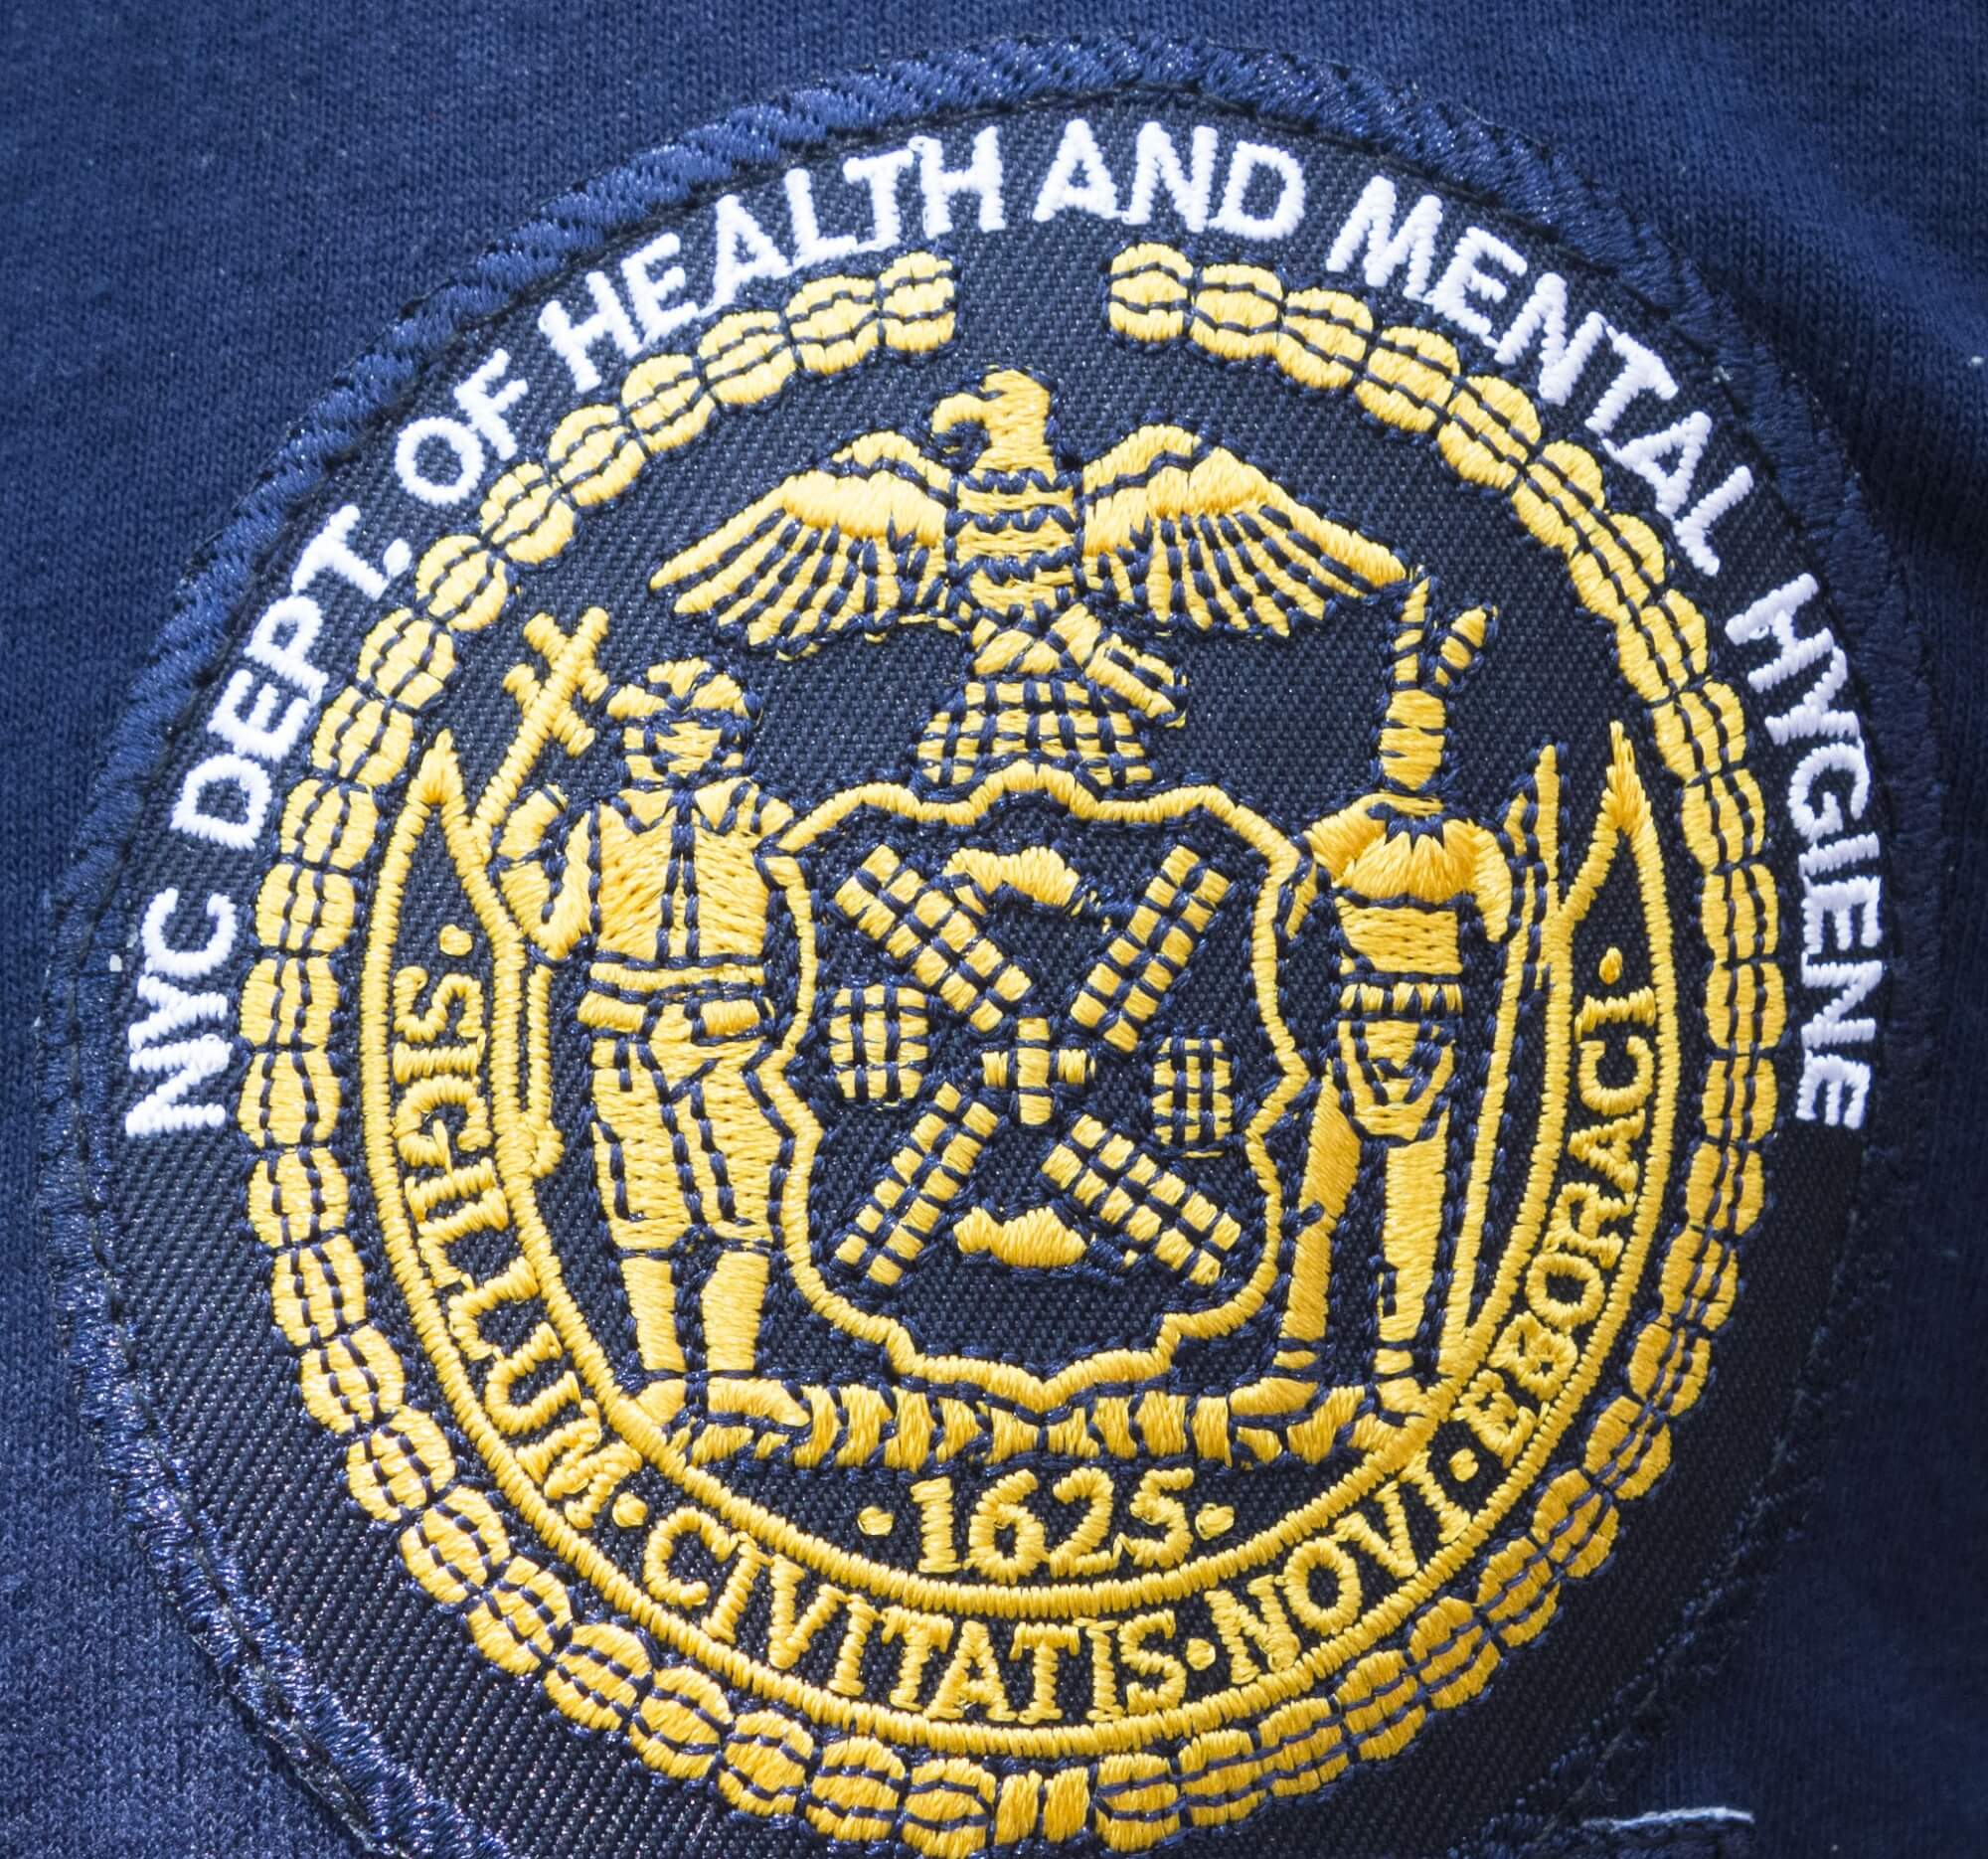 Official patch of the NYC Department of Health and Mental Hygiene